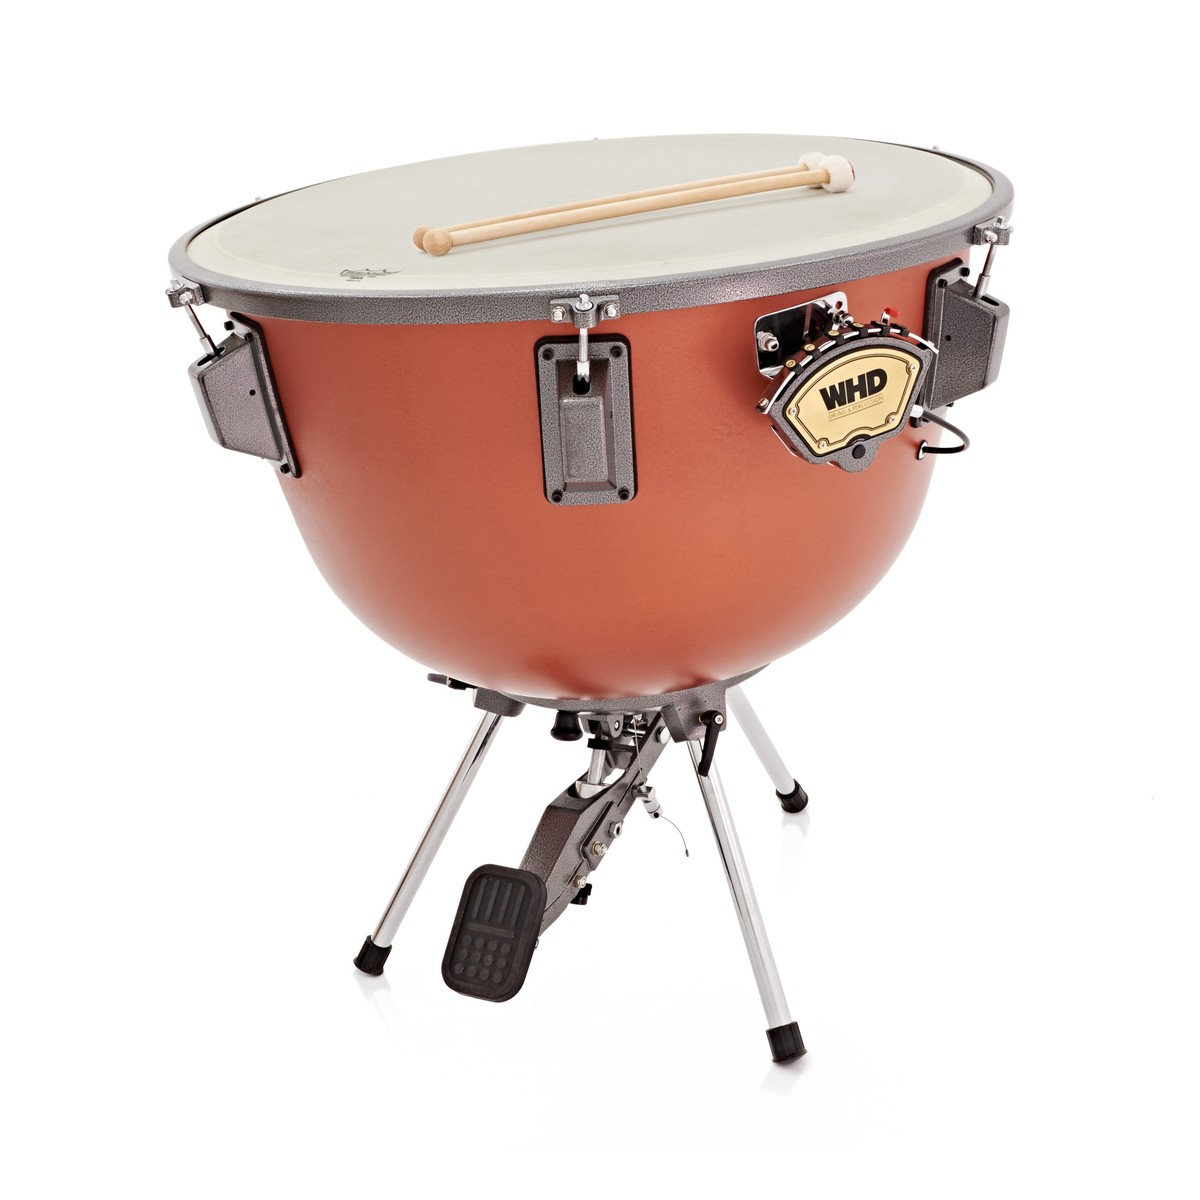 whd 29 professional orchestral timpani at gear4music